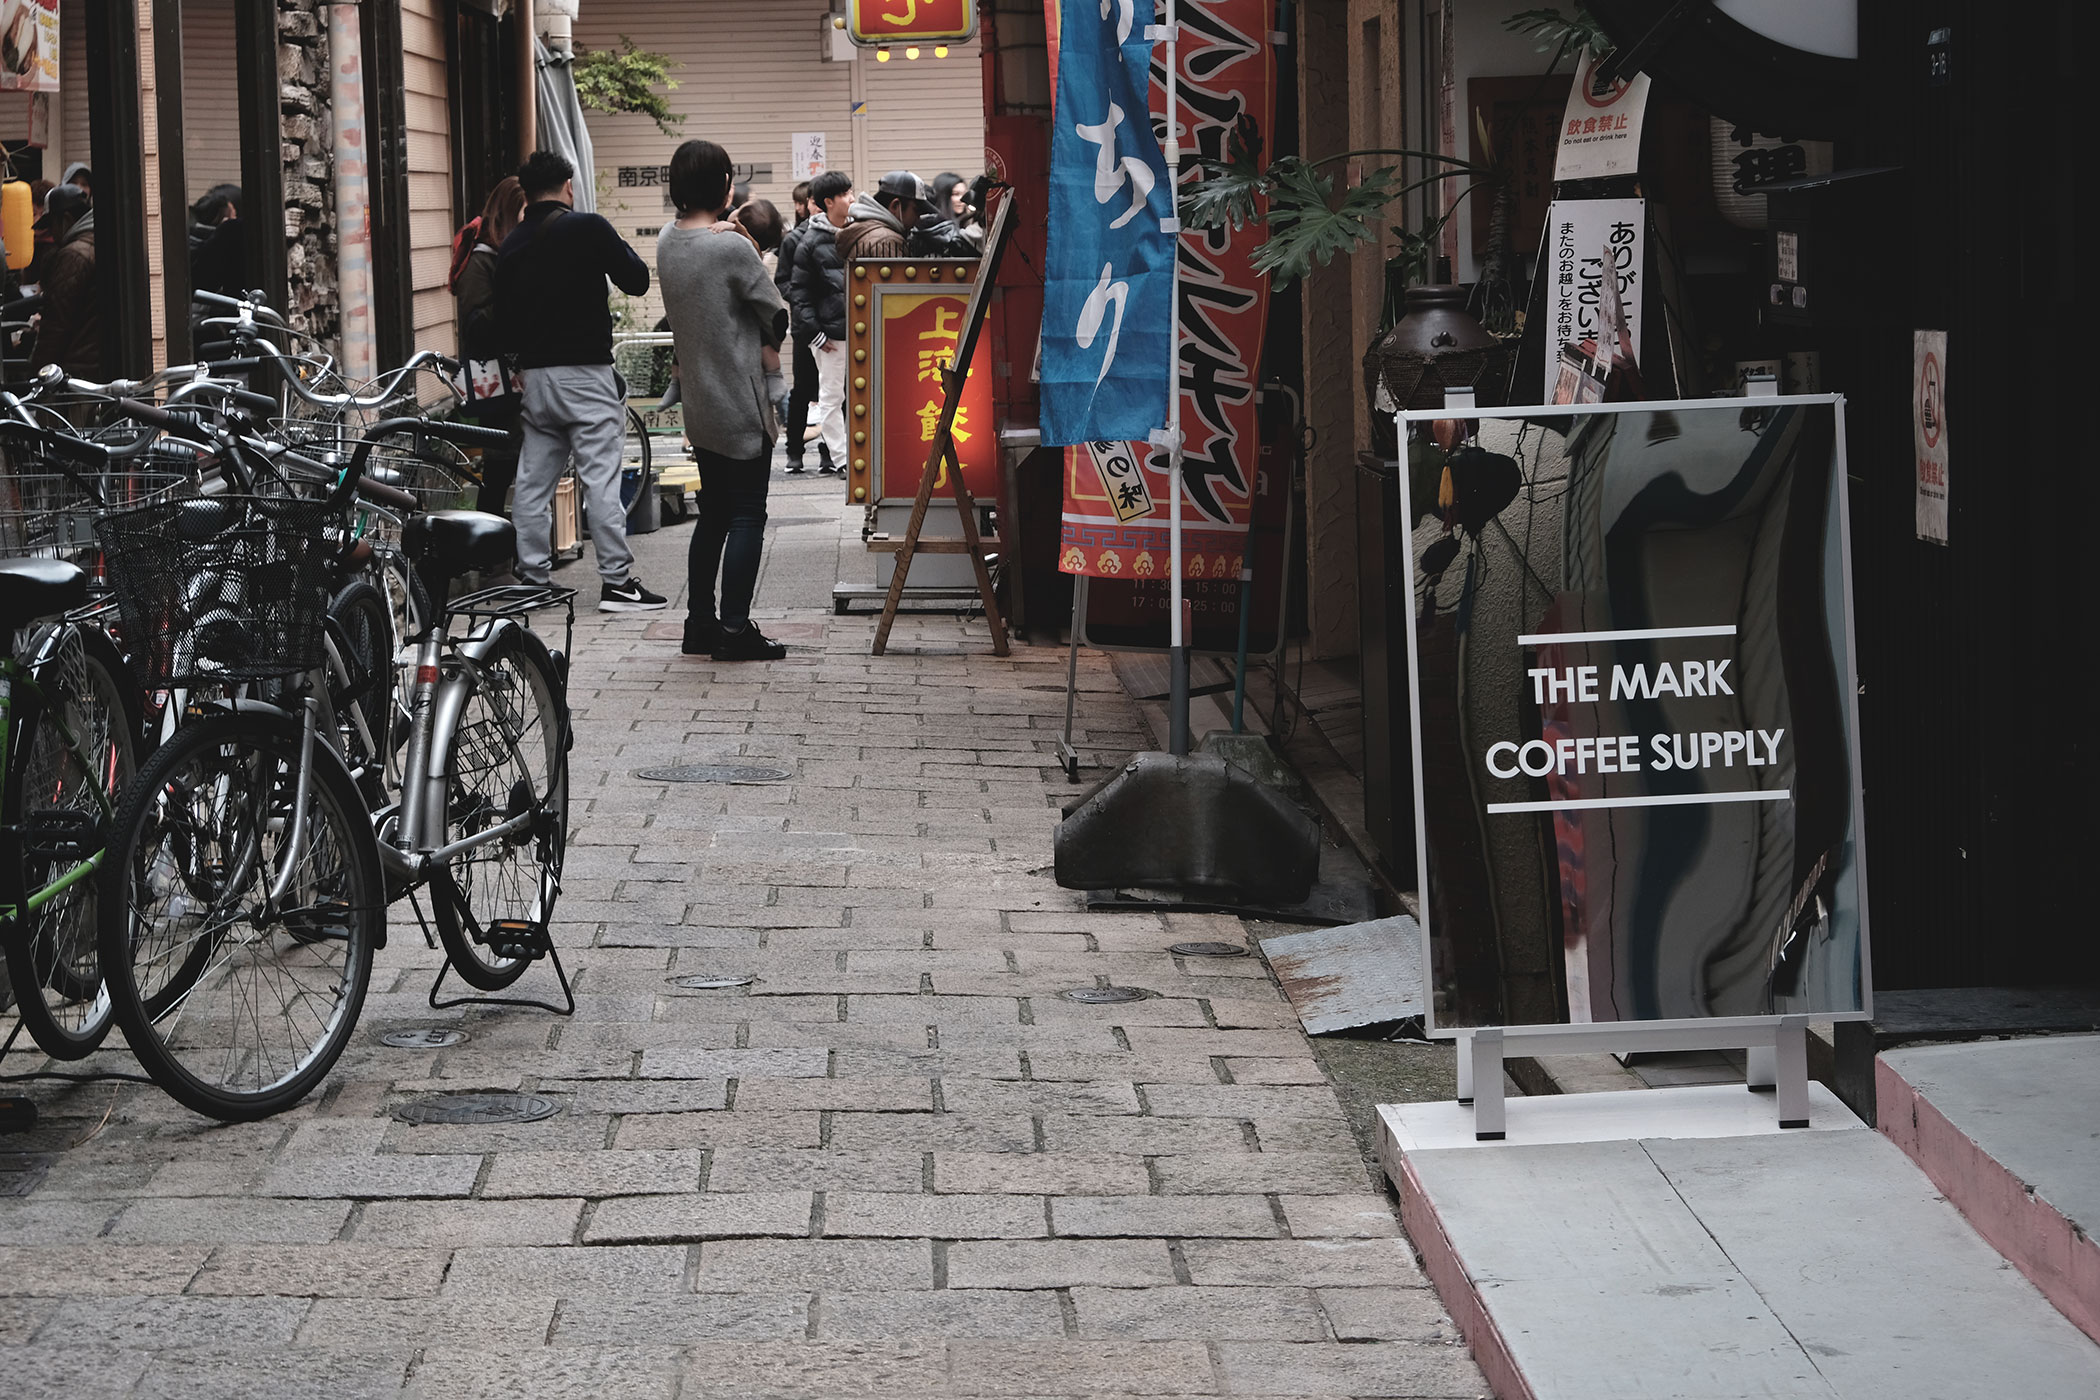 THE MARK COFFEE SUPPLY 神戸